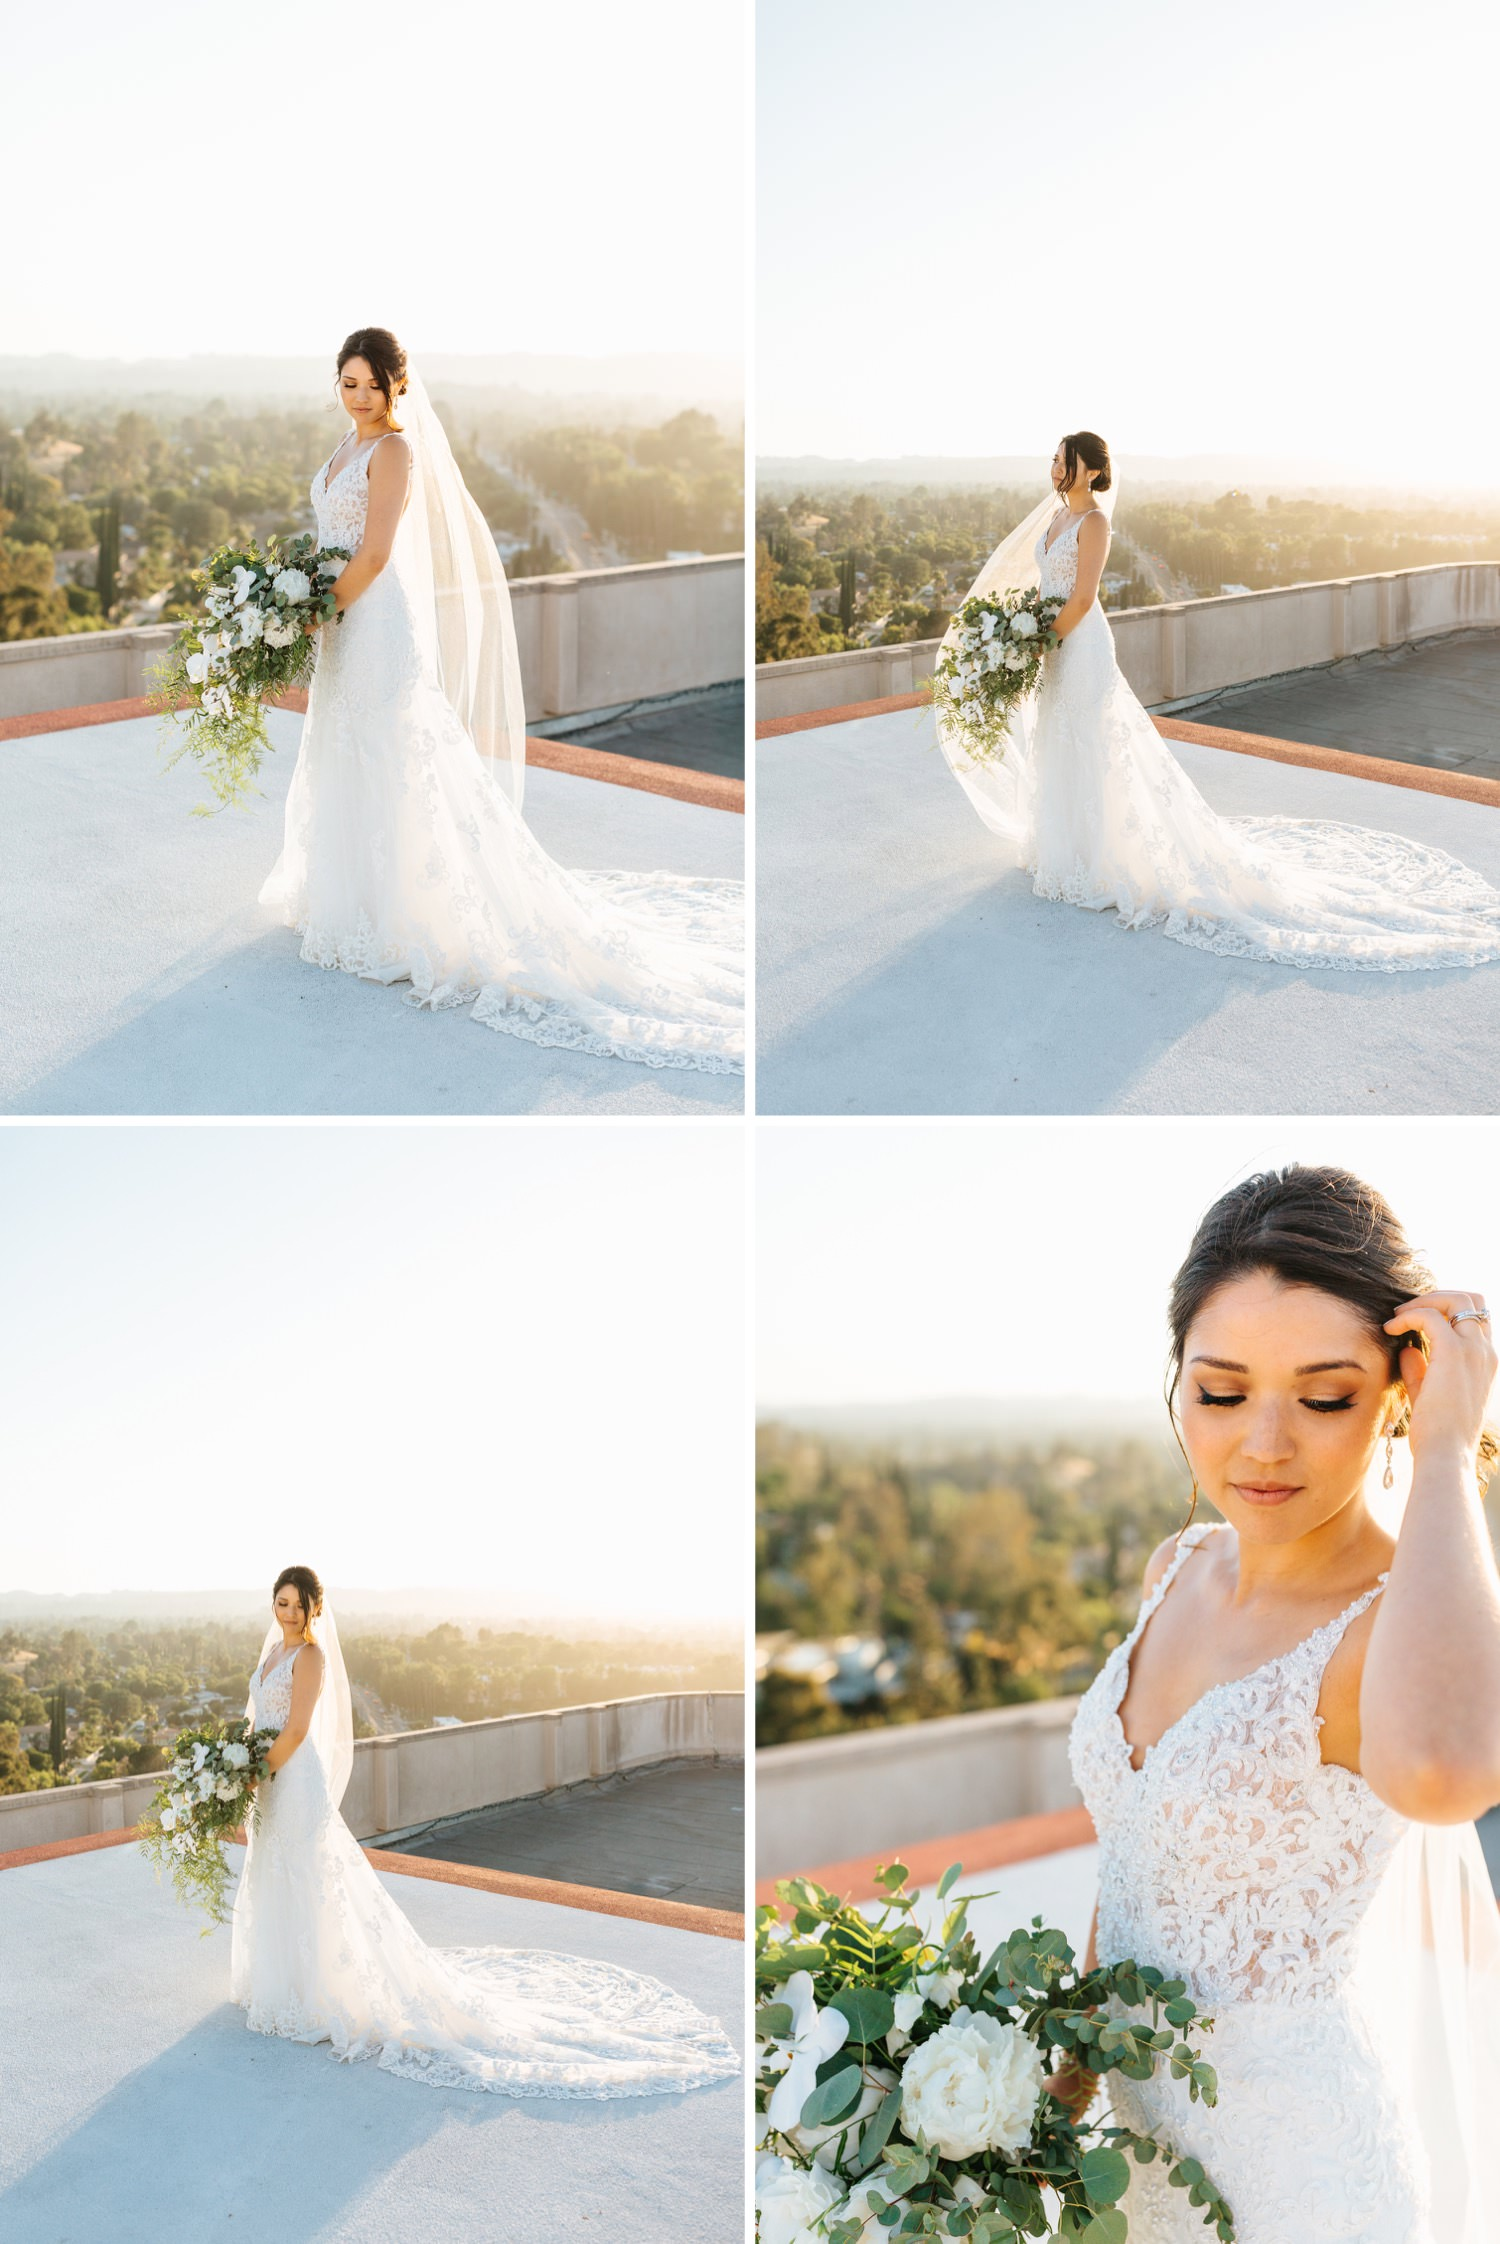 Stunning Bridal Portraits - Beautiful Bride - LA rooftop Wedding photos - https://brittneyhannonphotography.com